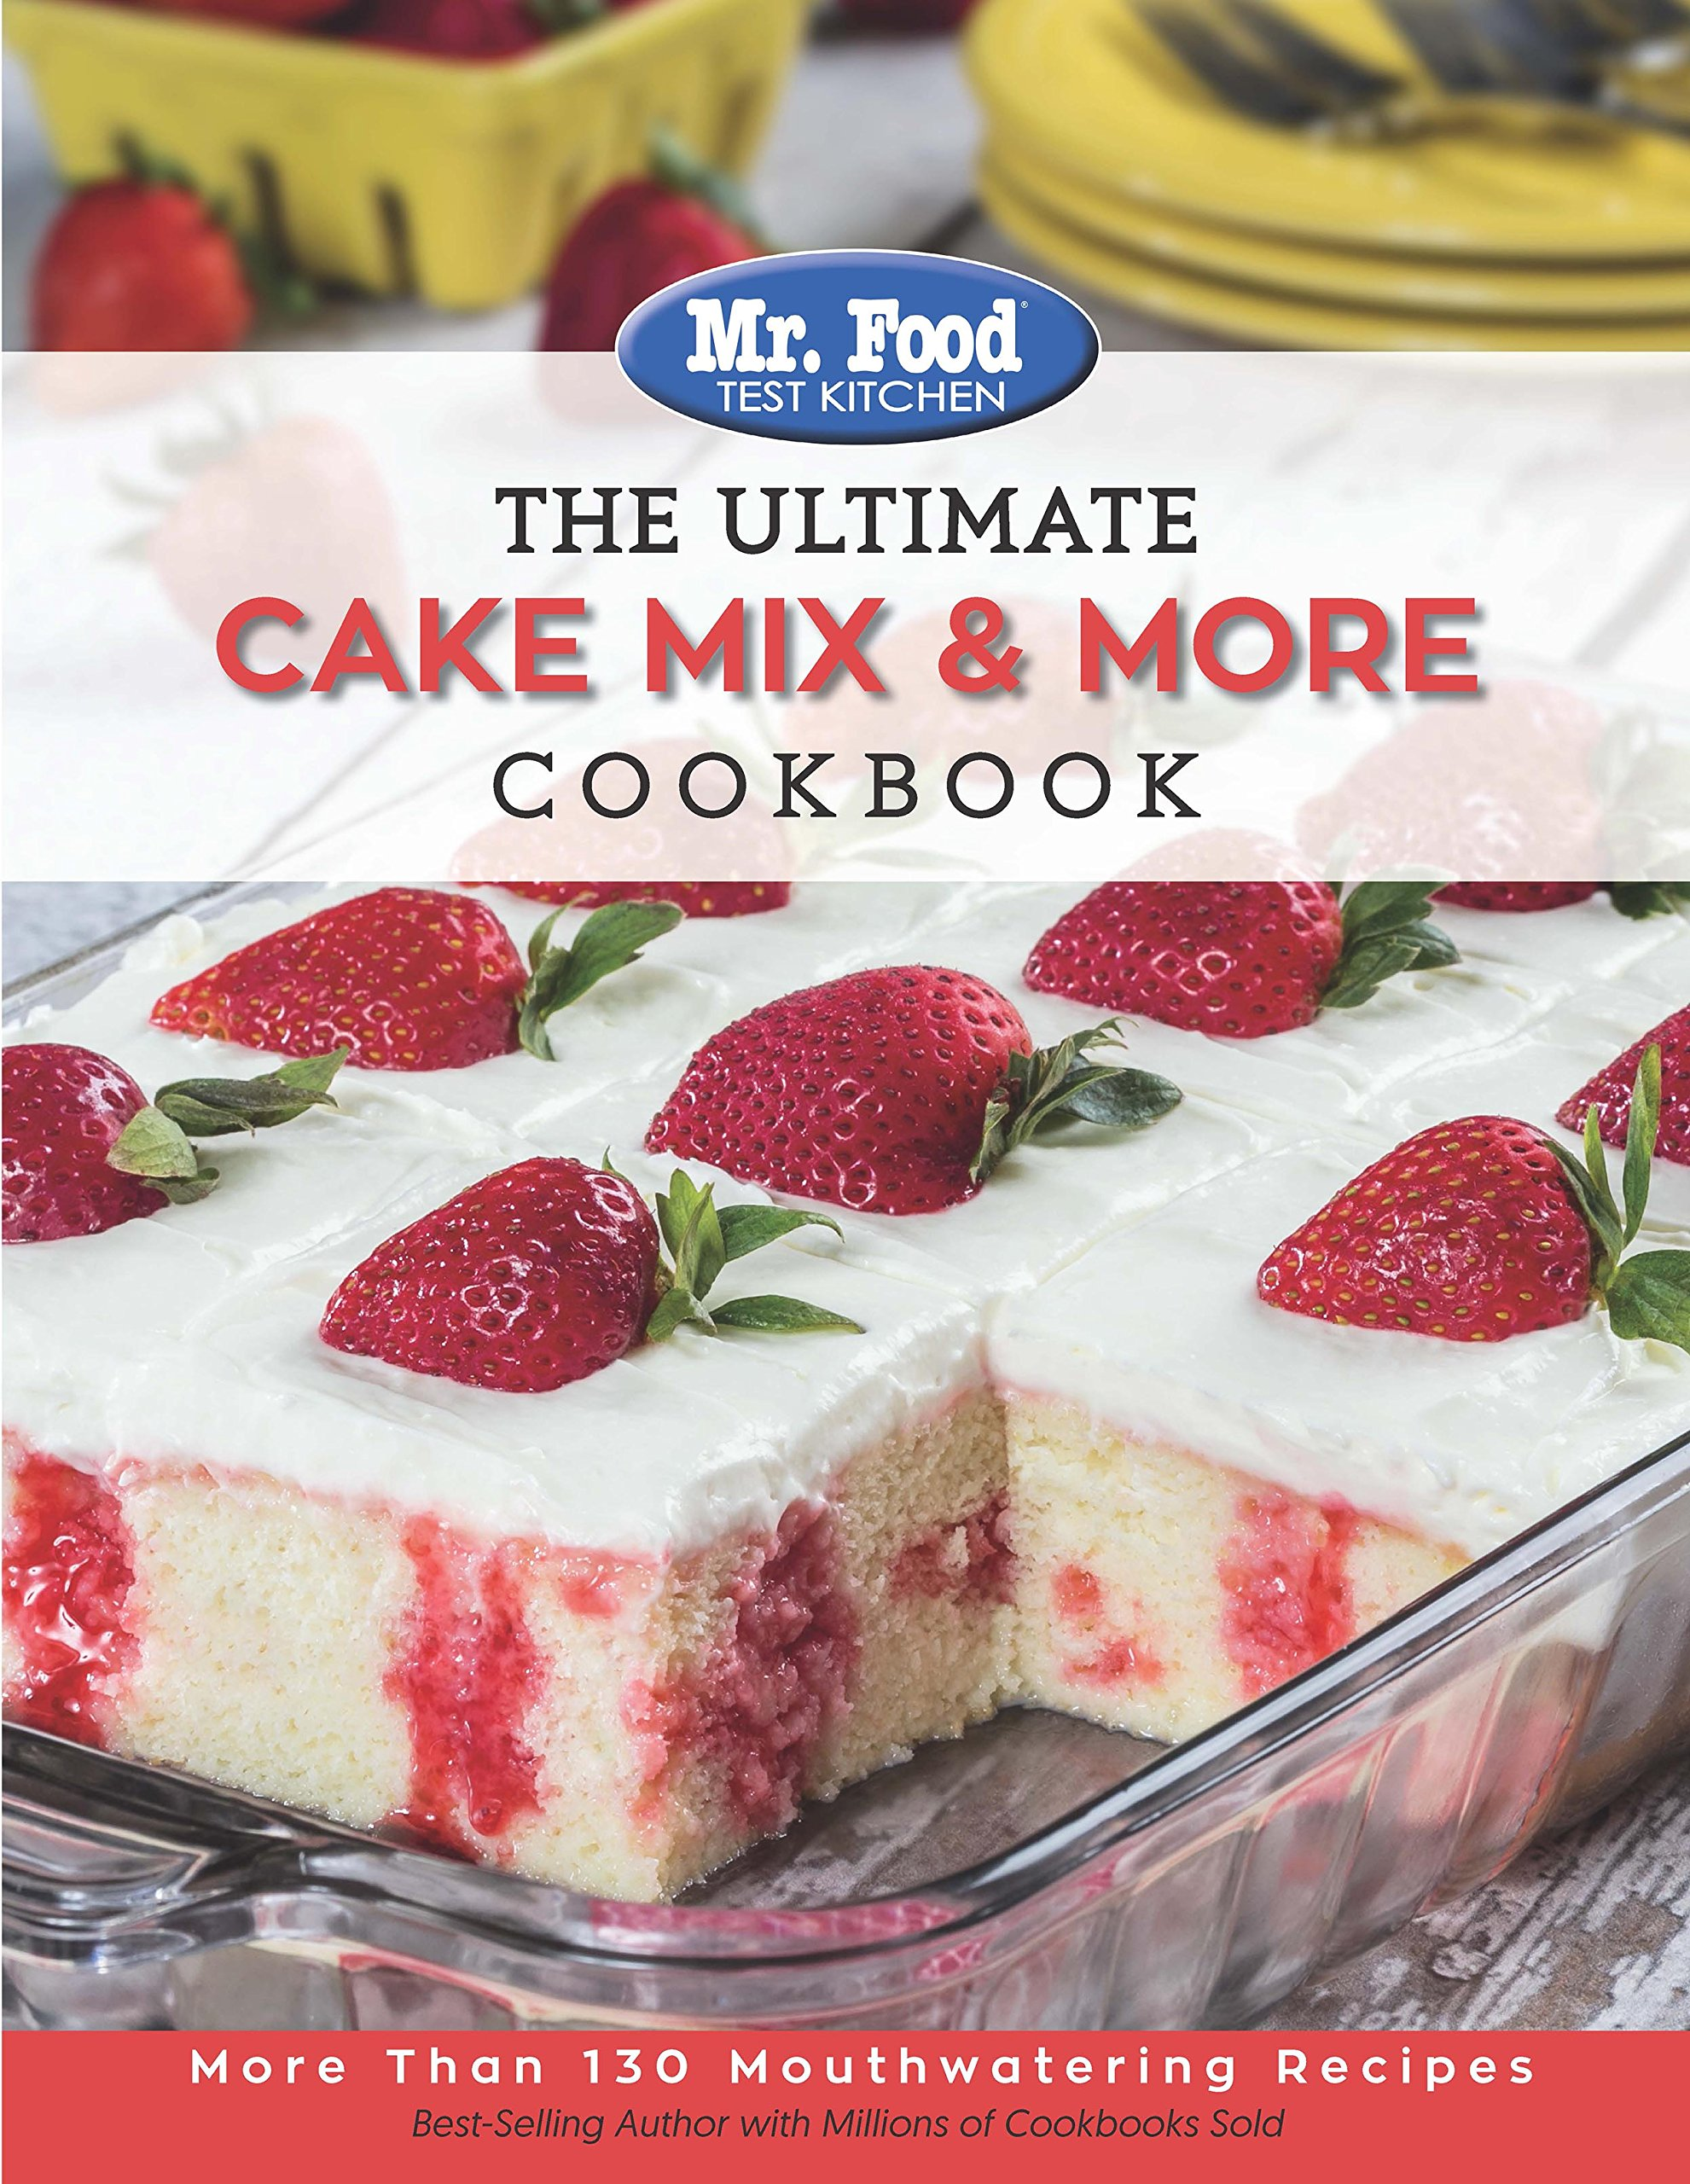 Mr food test kitchen the ultimate cake mix more cookbook more mr food test kitchen the ultimate cake mix more cookbook more than 130 mouthwatering recipes the ultimate cookbook series mr food test kitchen forumfinder Image collections